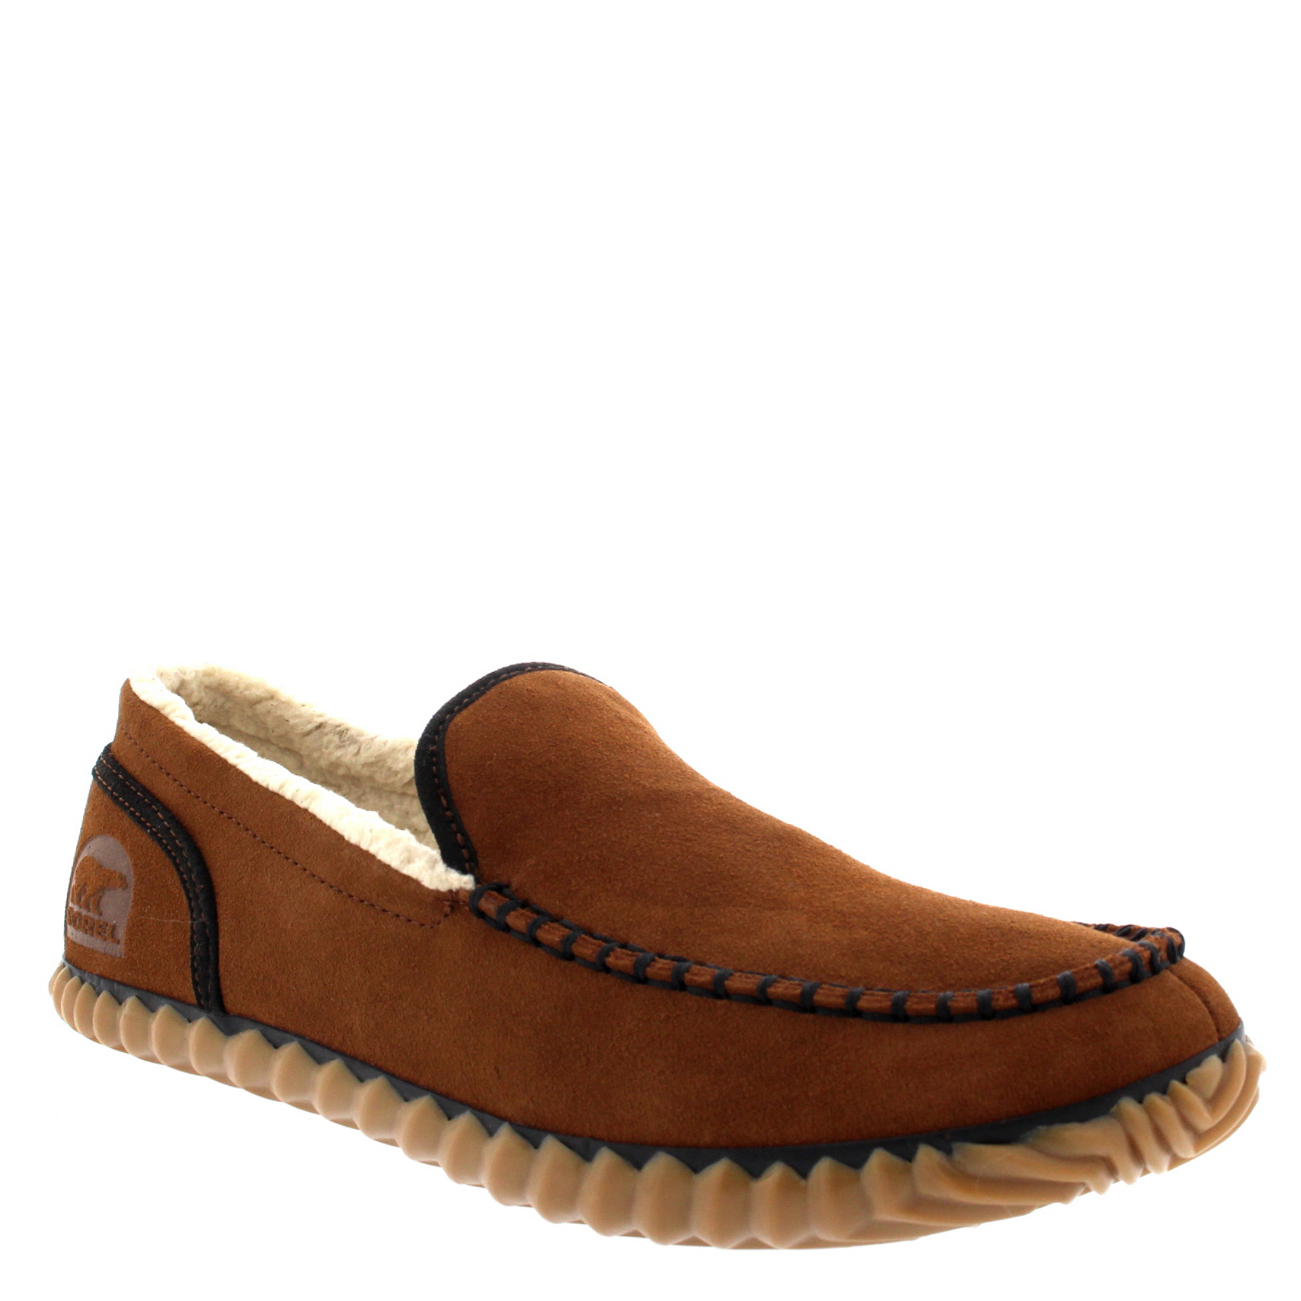 Mens Moccasin Type Shoes